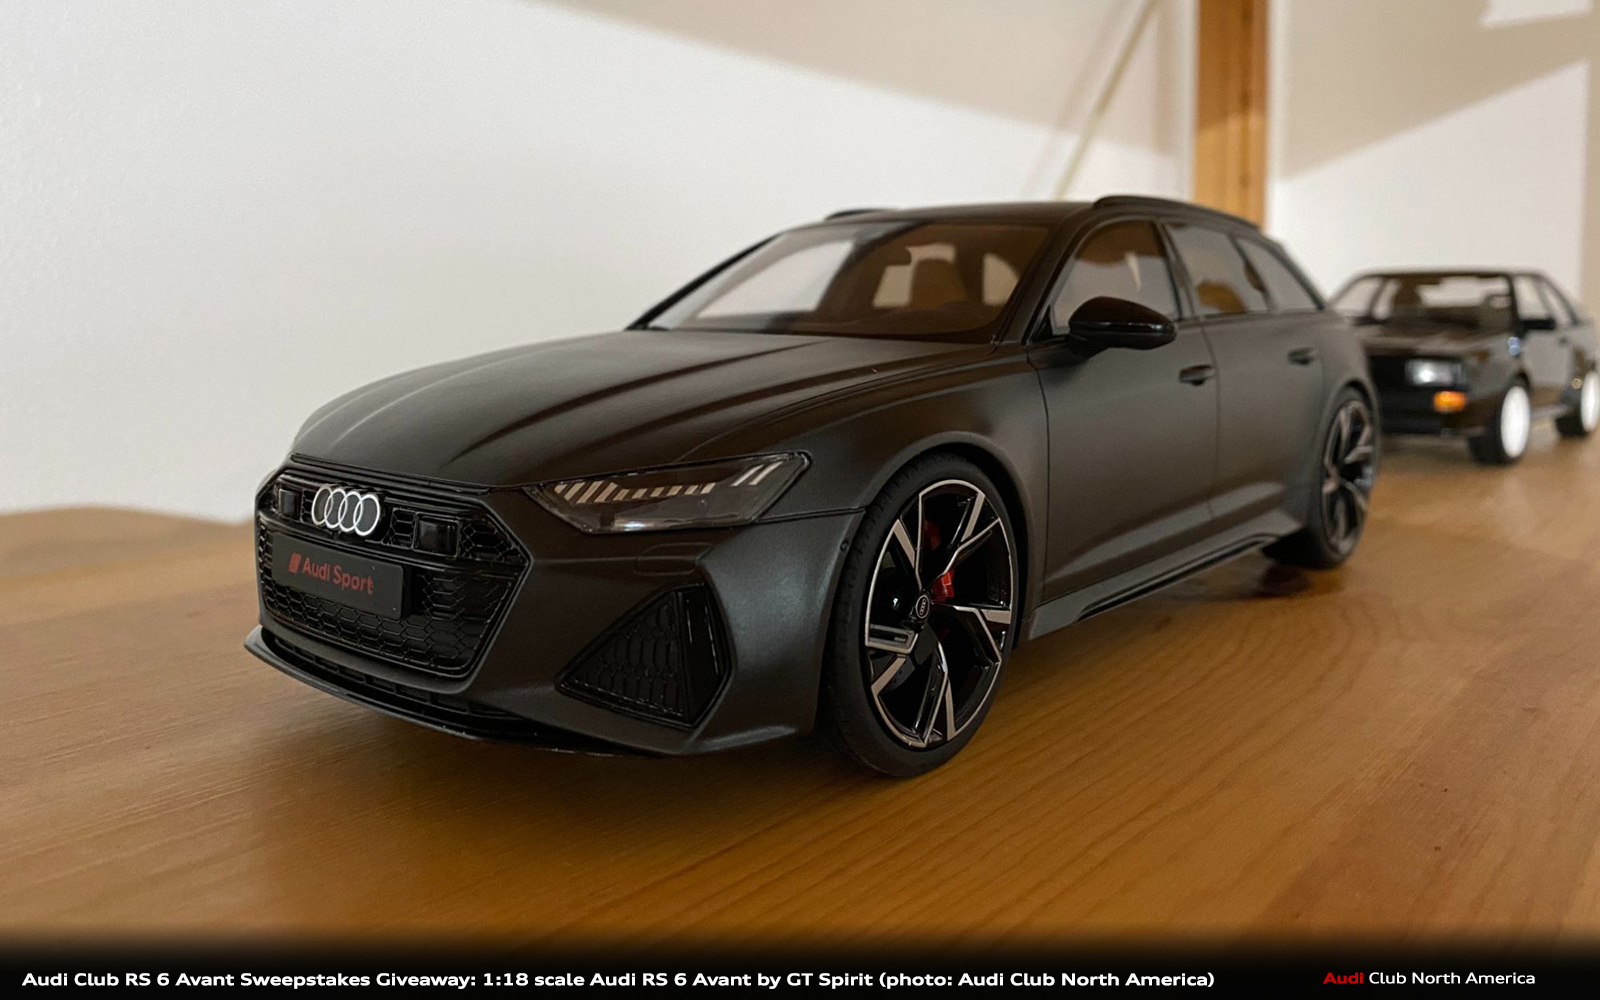 Audi Club RS 6 Avant Sweepstakes Giveaway: 1:18 scale Audi RS 6 Avant by GT Spirit